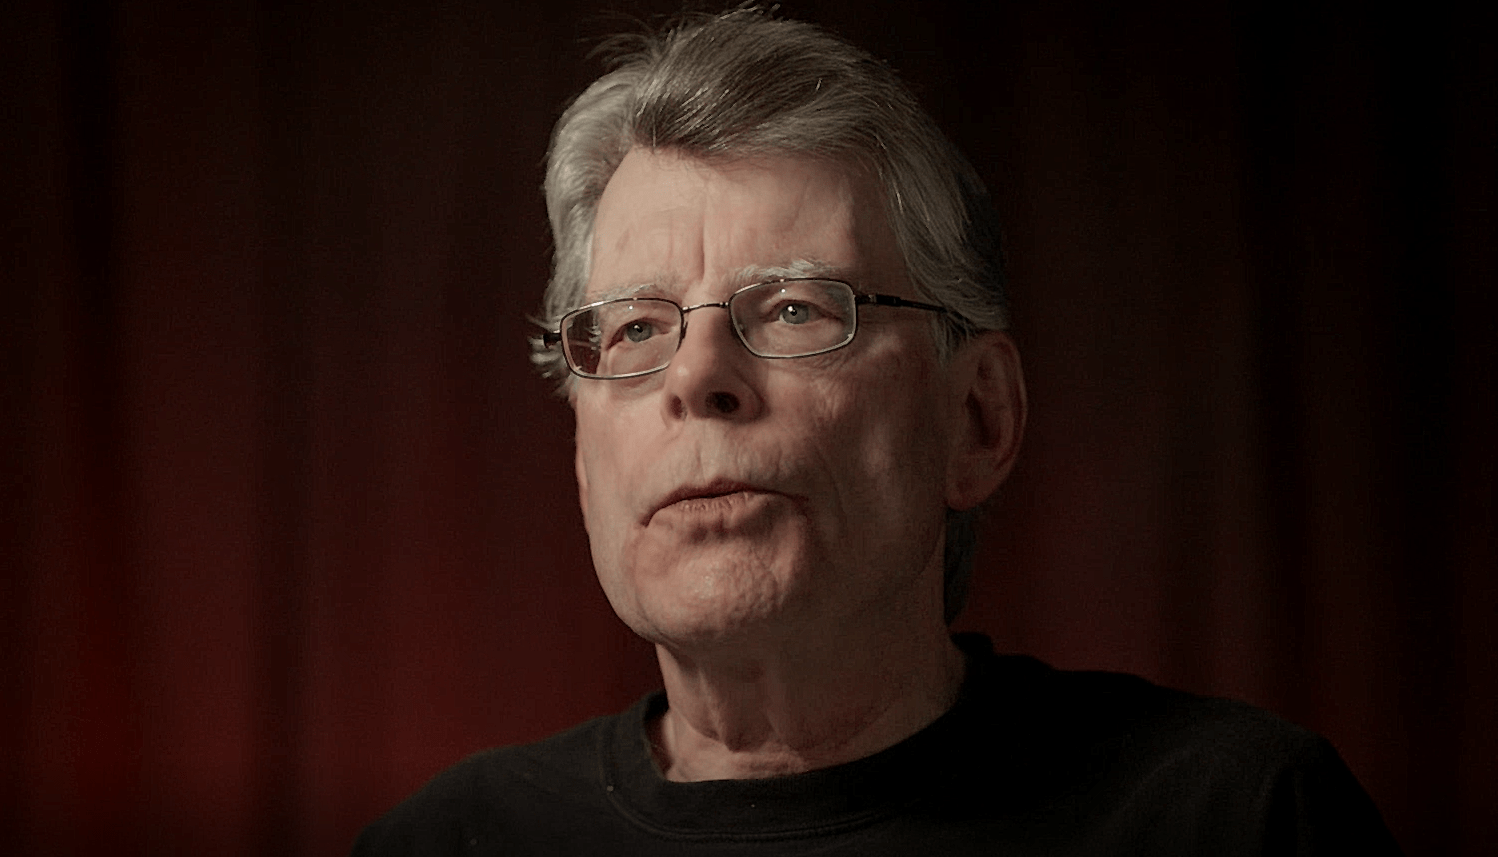 Stephen King Teases New Novel 'If It Bleeds' for 2020, Centered on 'Mr. Mercedes' Character - Bloody Disgusting